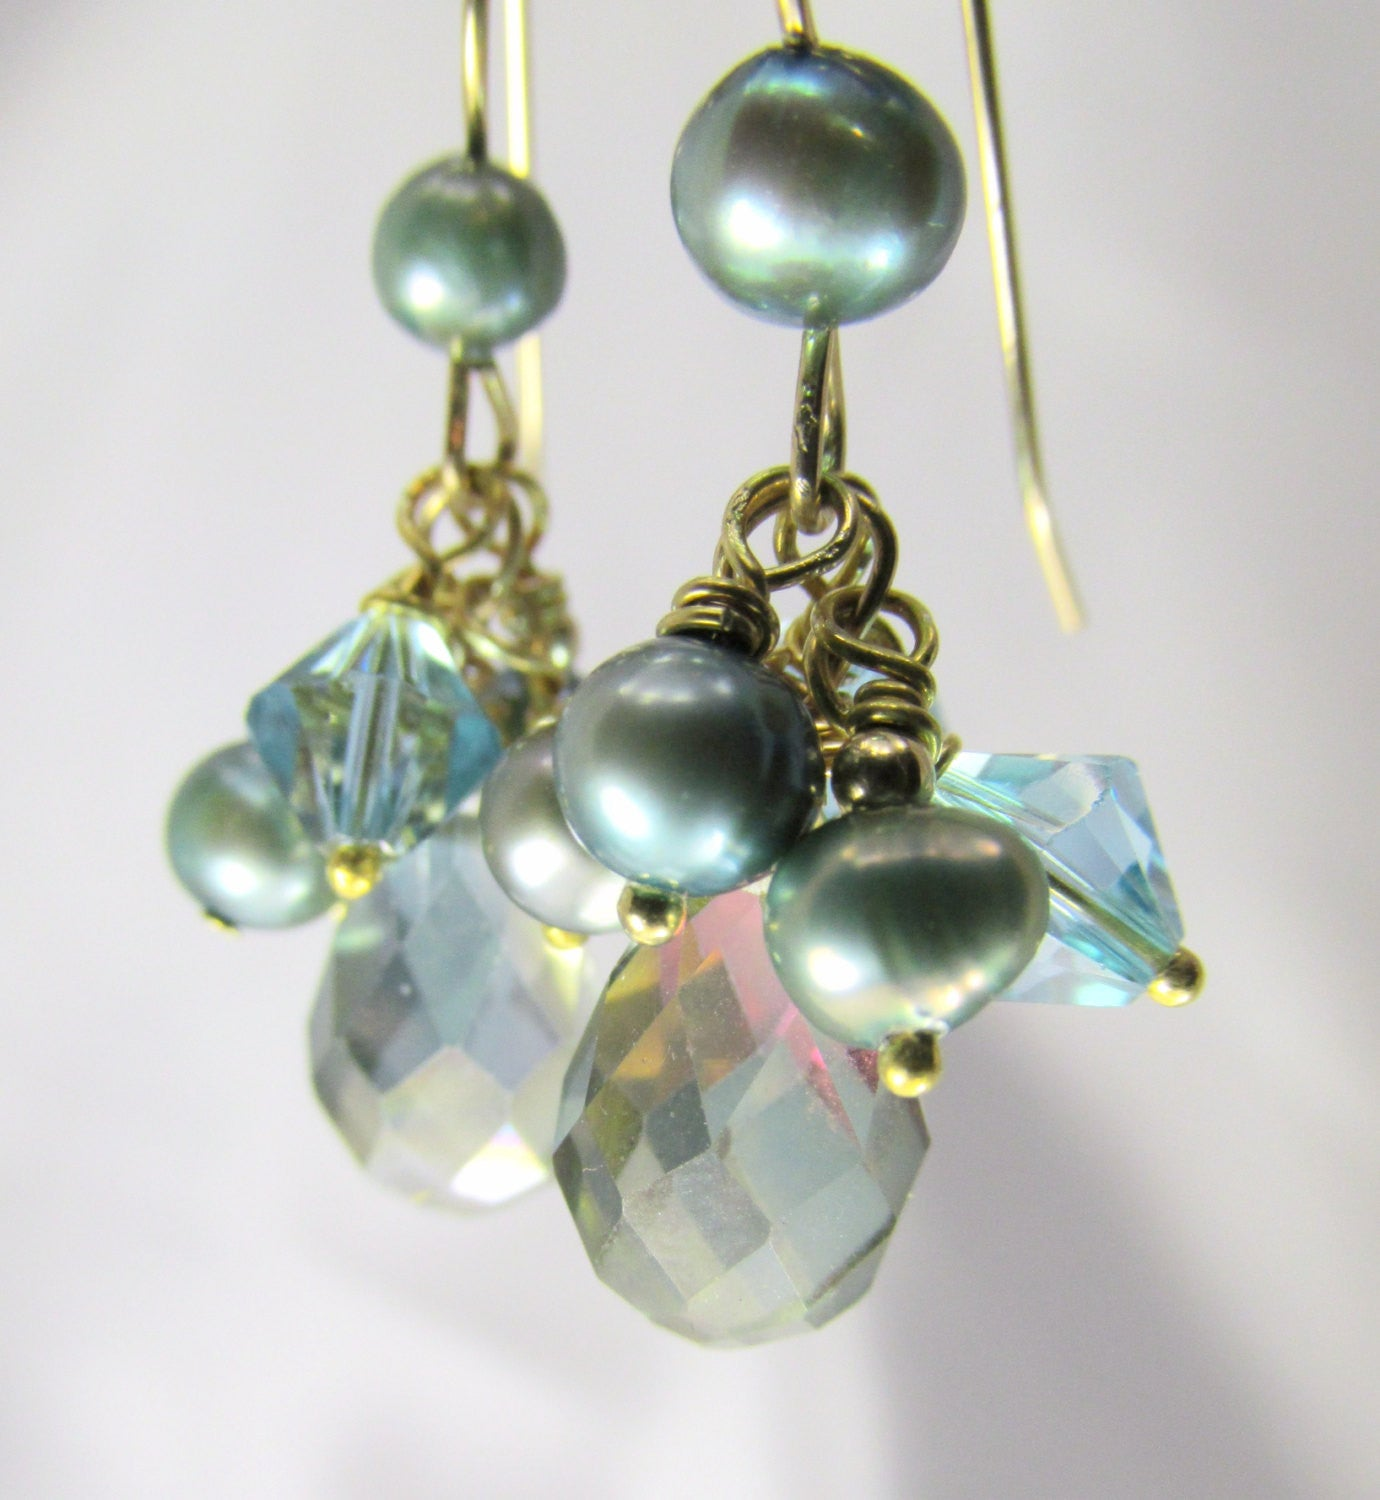 Seaside Aqua Teal Bridal or Bridesmaid Faceted Crystal and Freshwater pearl earrings - all 14k gold fill - Odyssey Creations